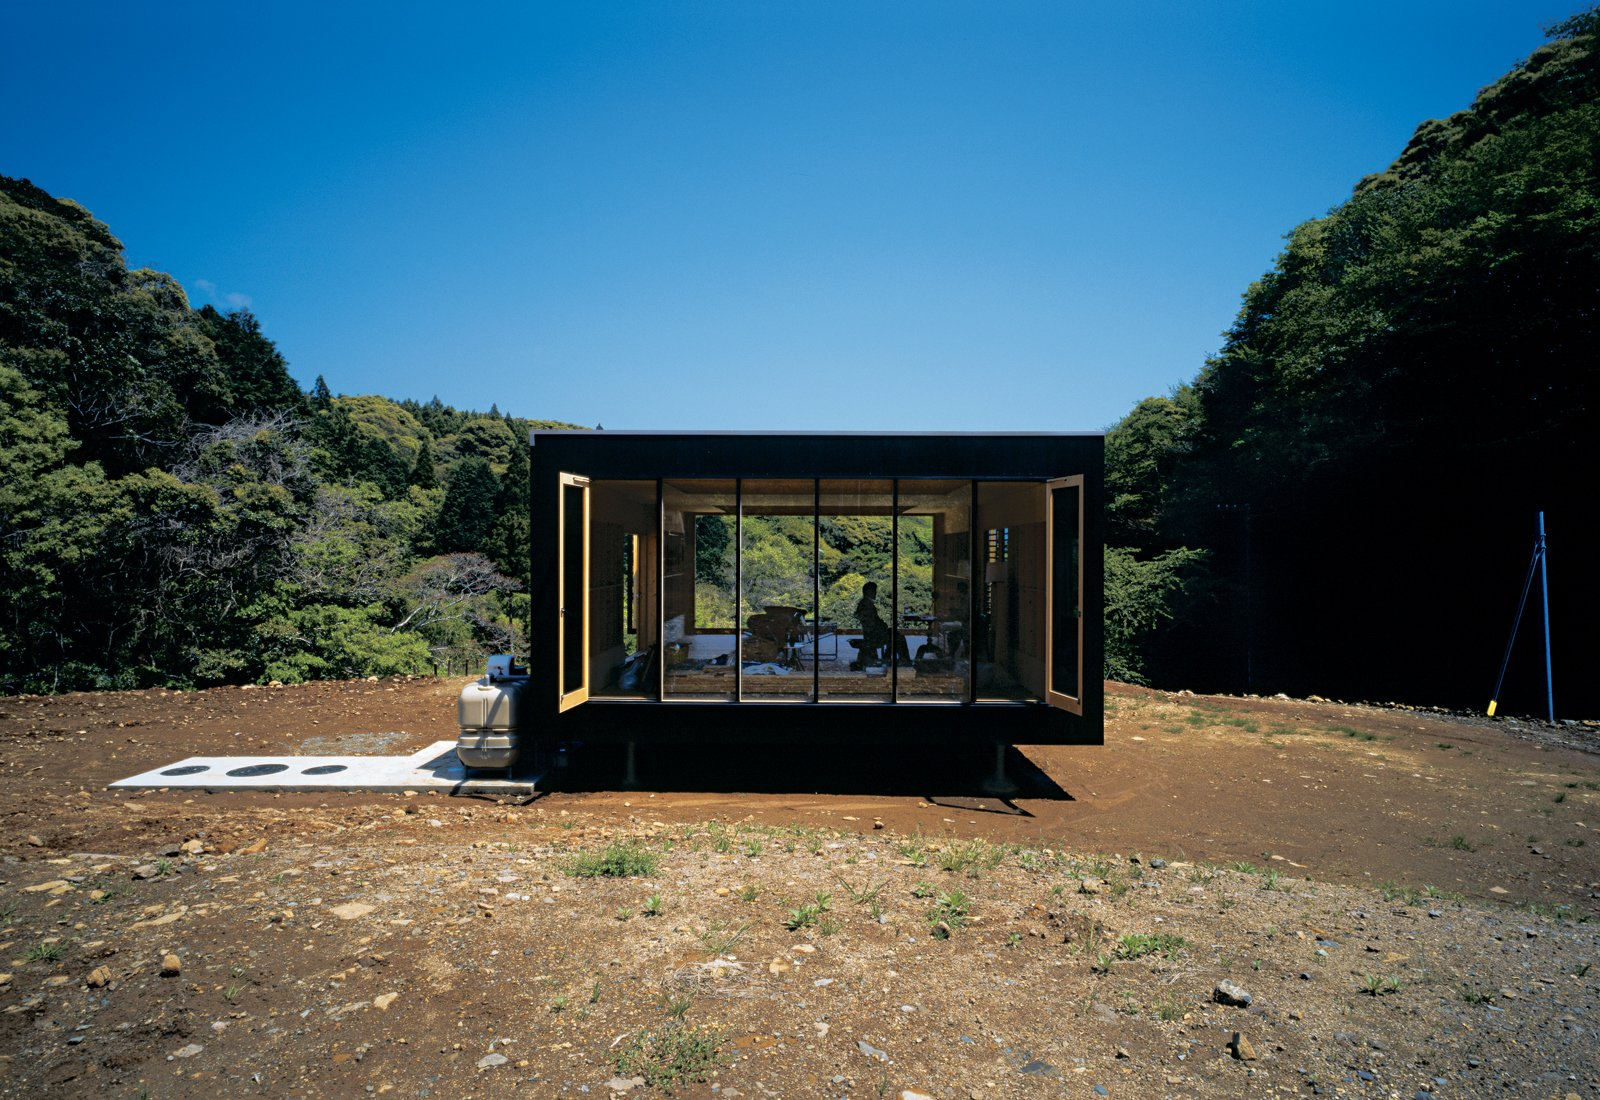 Architect Tadashi Murai designed this remote retreat for a Tokyo transplant who abandoned his corporate existence.  Home Design Solutions in Japan by Olivia Martin from Simply Sustainable